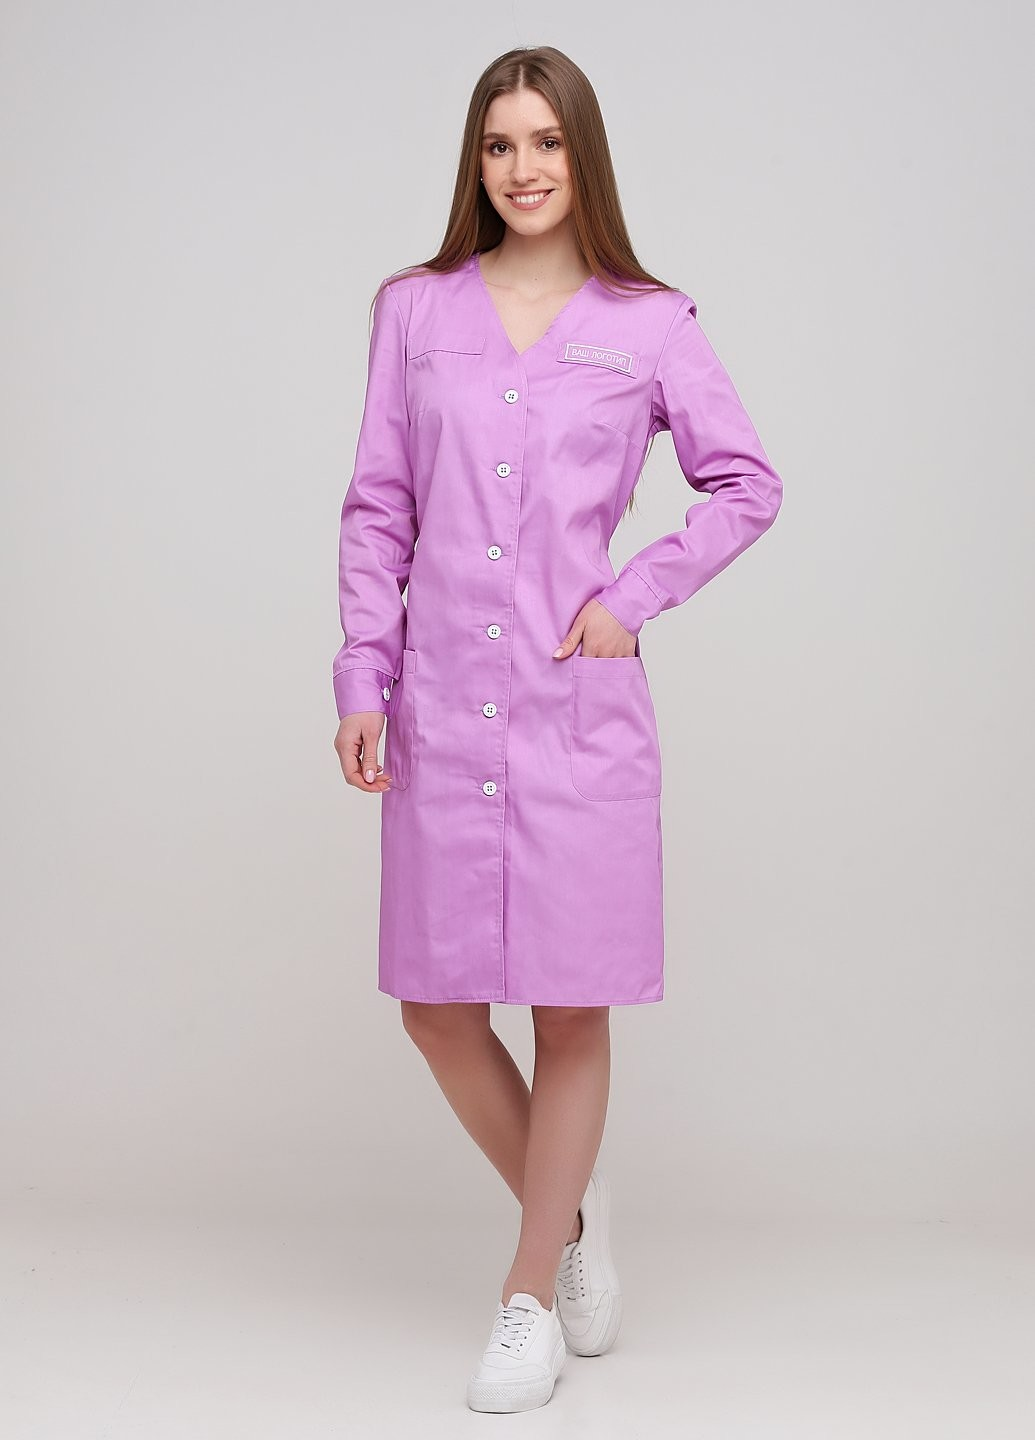 Medical gowns for women